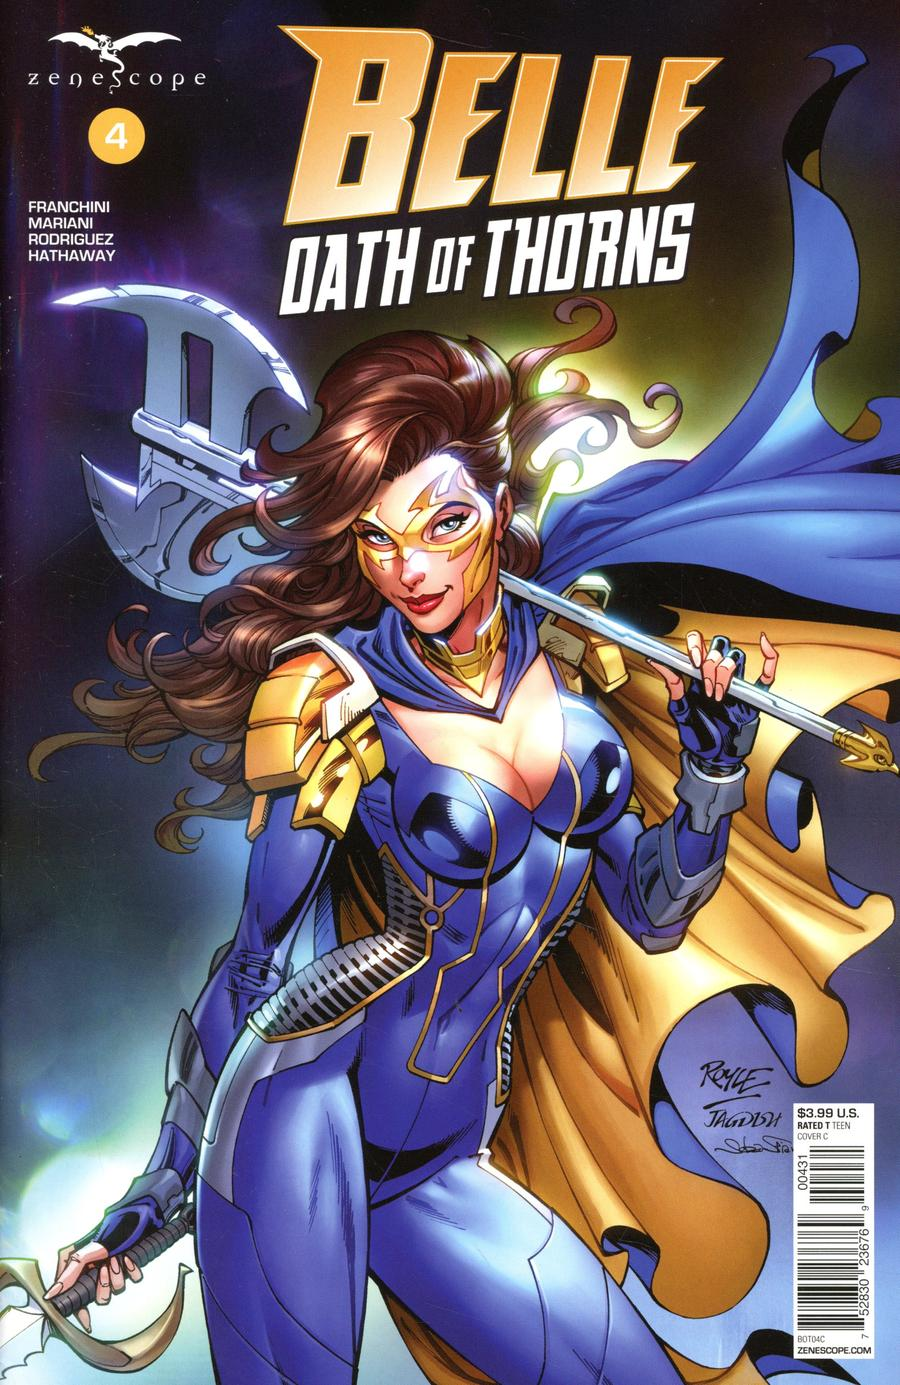 Grimm Fairy Tales Presents Belle Oath Of Thorns #4 Cover C John Royle